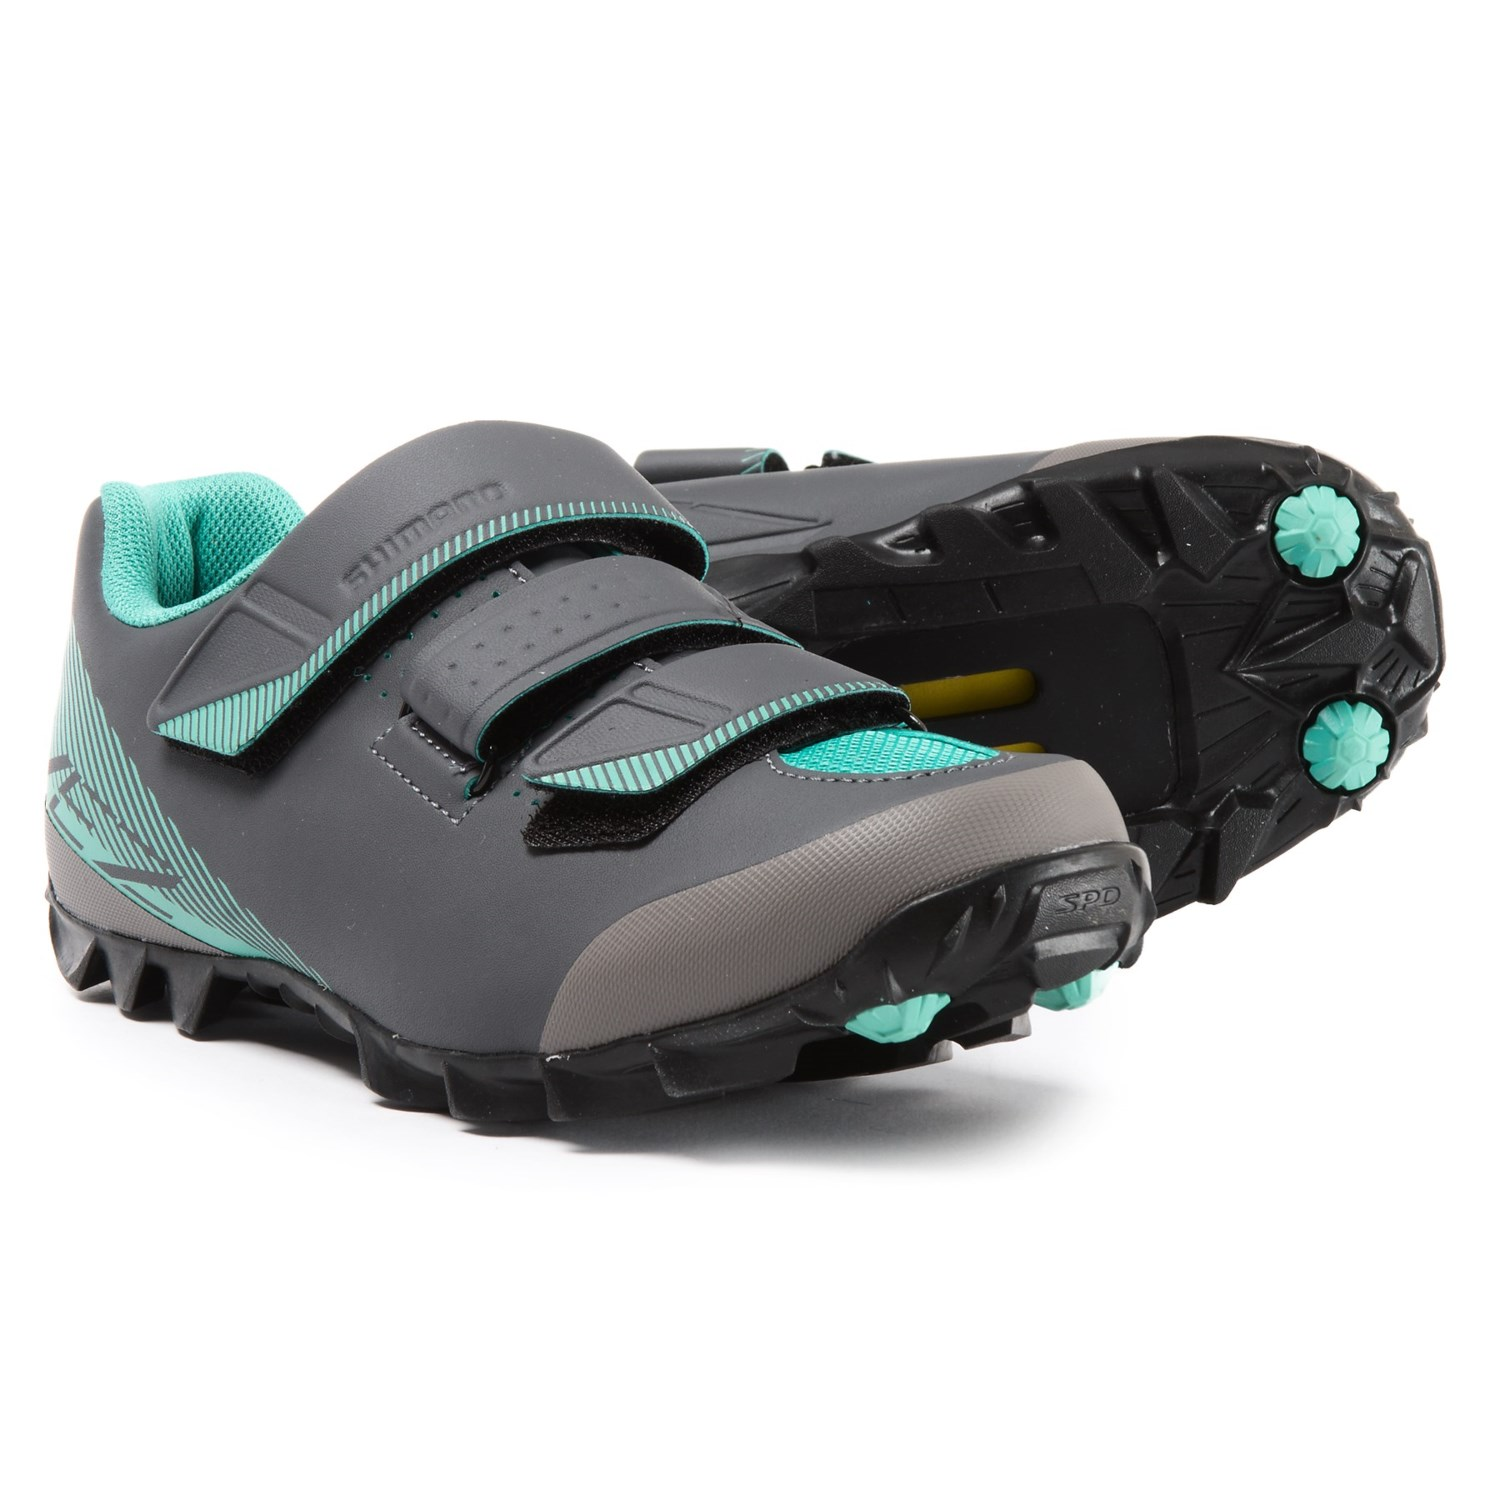 28498684d97 Shimano Mountain Bike Shoes Womens - Best Image Of Mountain Hpimagery.Co